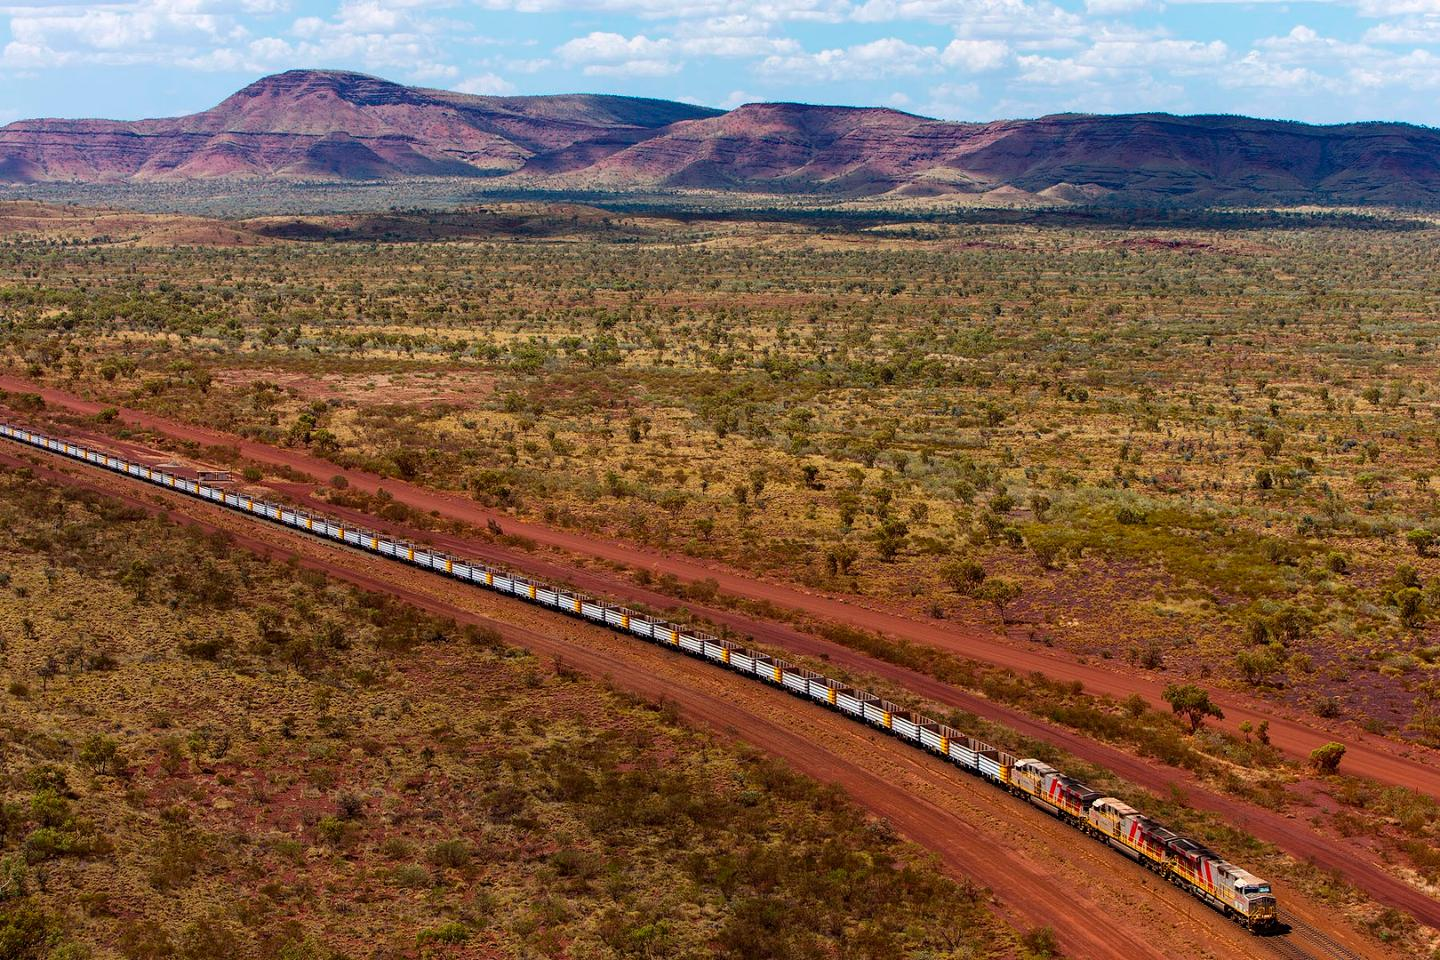 Rio Tinto has been working on autonomous train technology since 2012